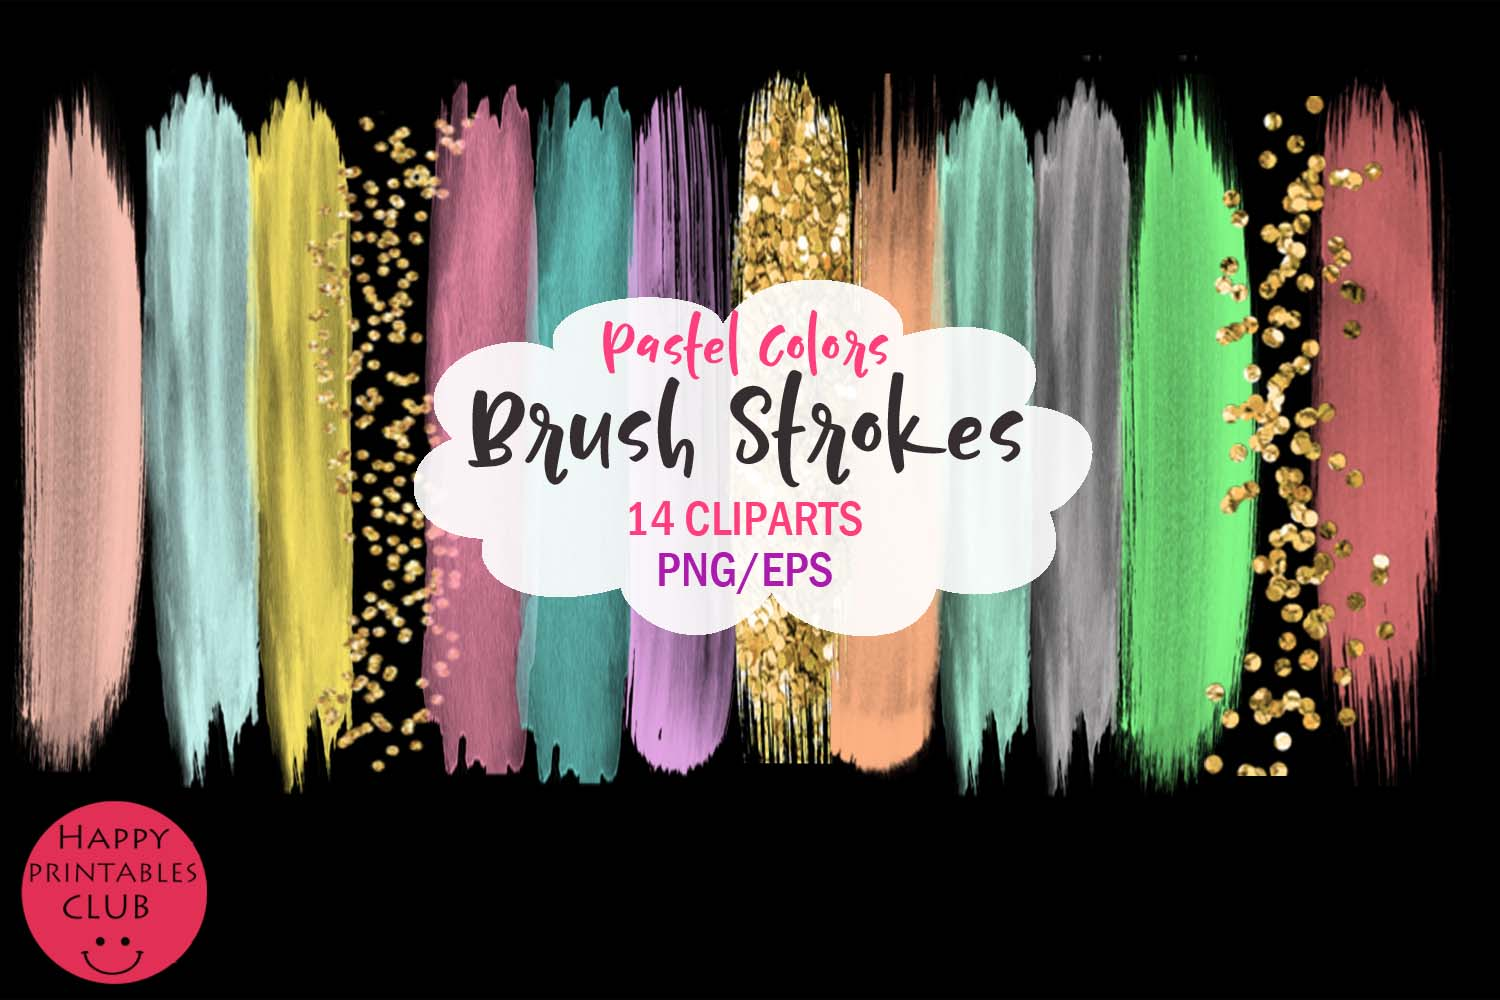 Pastel Colors Brush Strokes- Pastel Brush Strokes Clipart example image 2